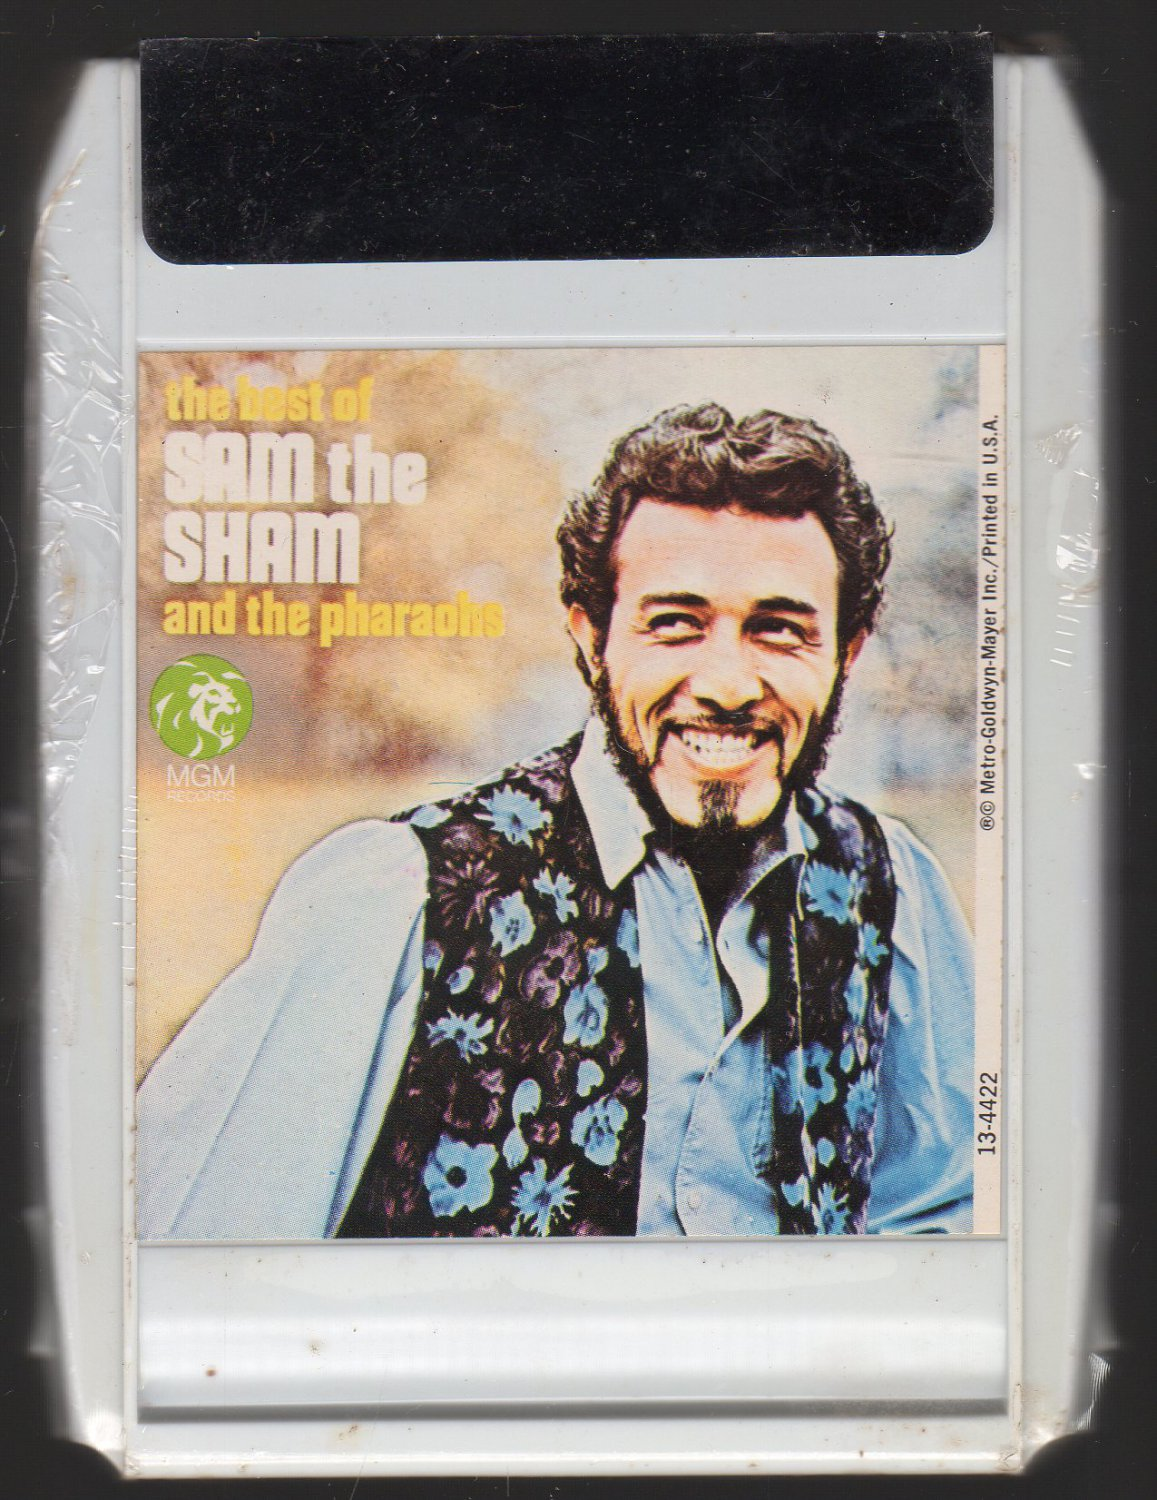 Sam The Sham And The Pharaohs - The Best Of 1966 ITCC MGM Sealed A34 4 or 8-track tape